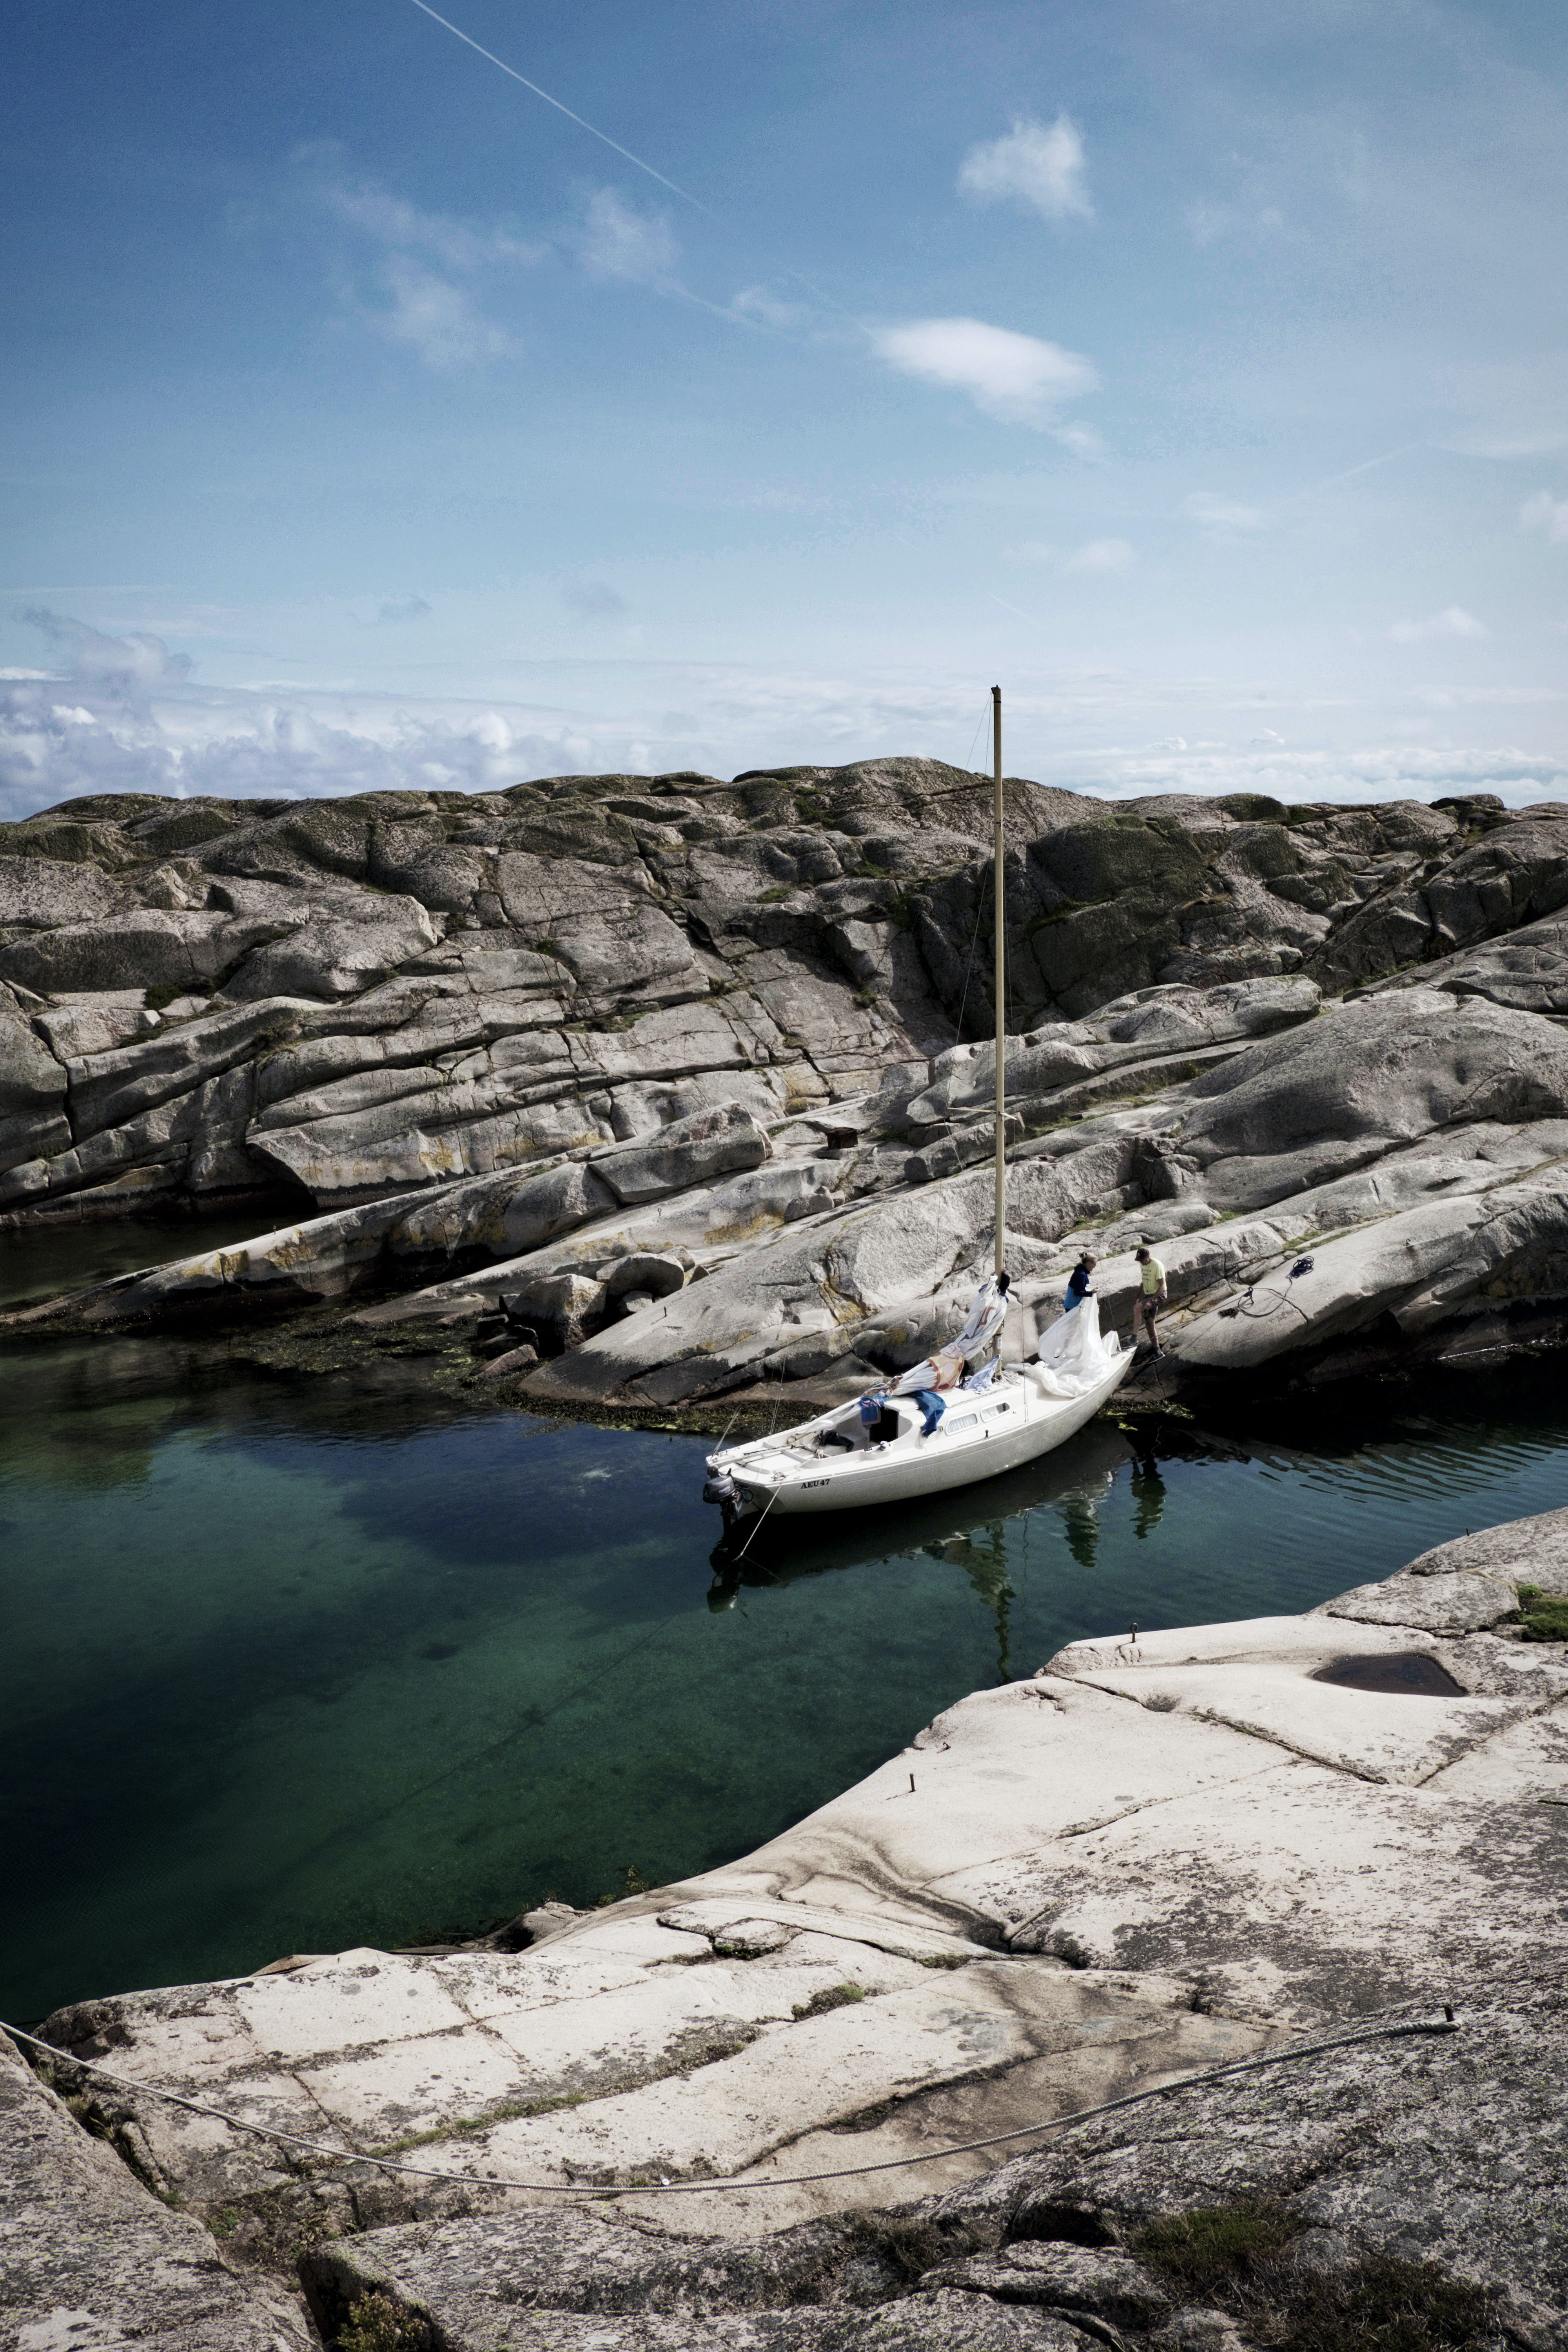 white boat on water beside rock formation